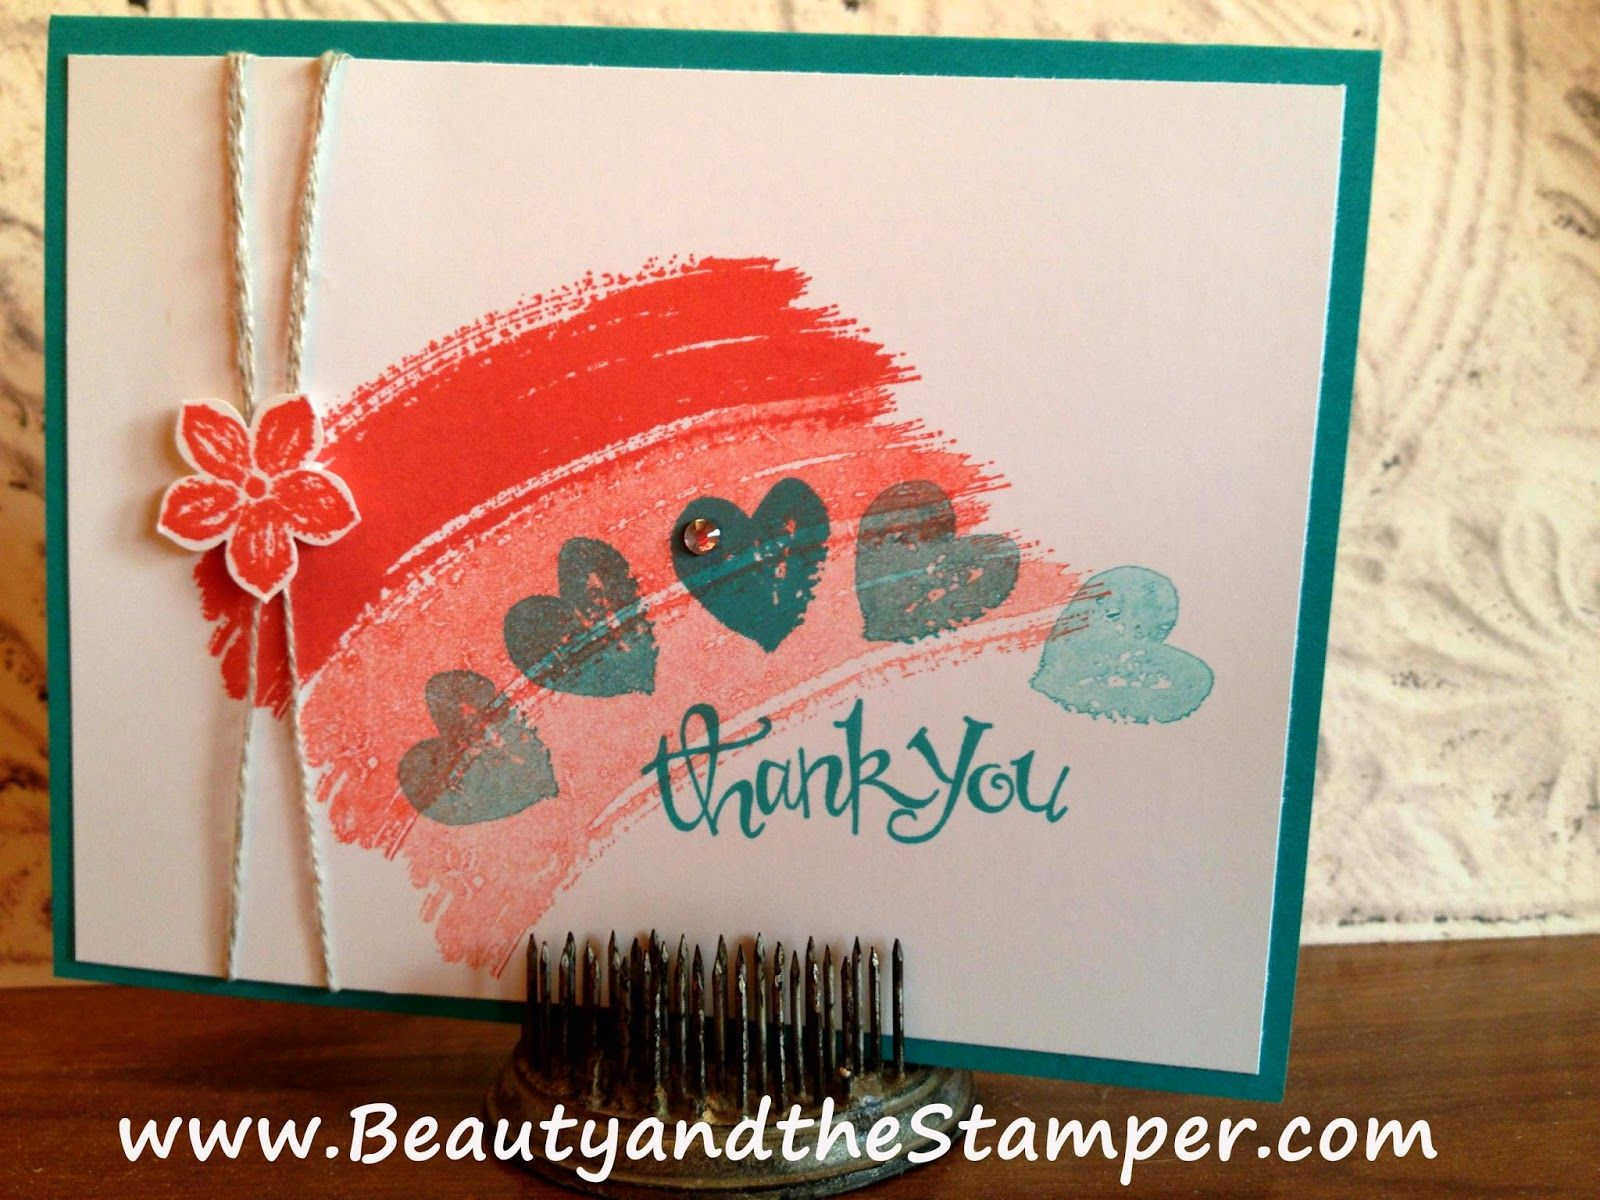 Hand stamped pink thank you cards images card in under two minutes explore hand stamped cards jeans and more m4hsunfo